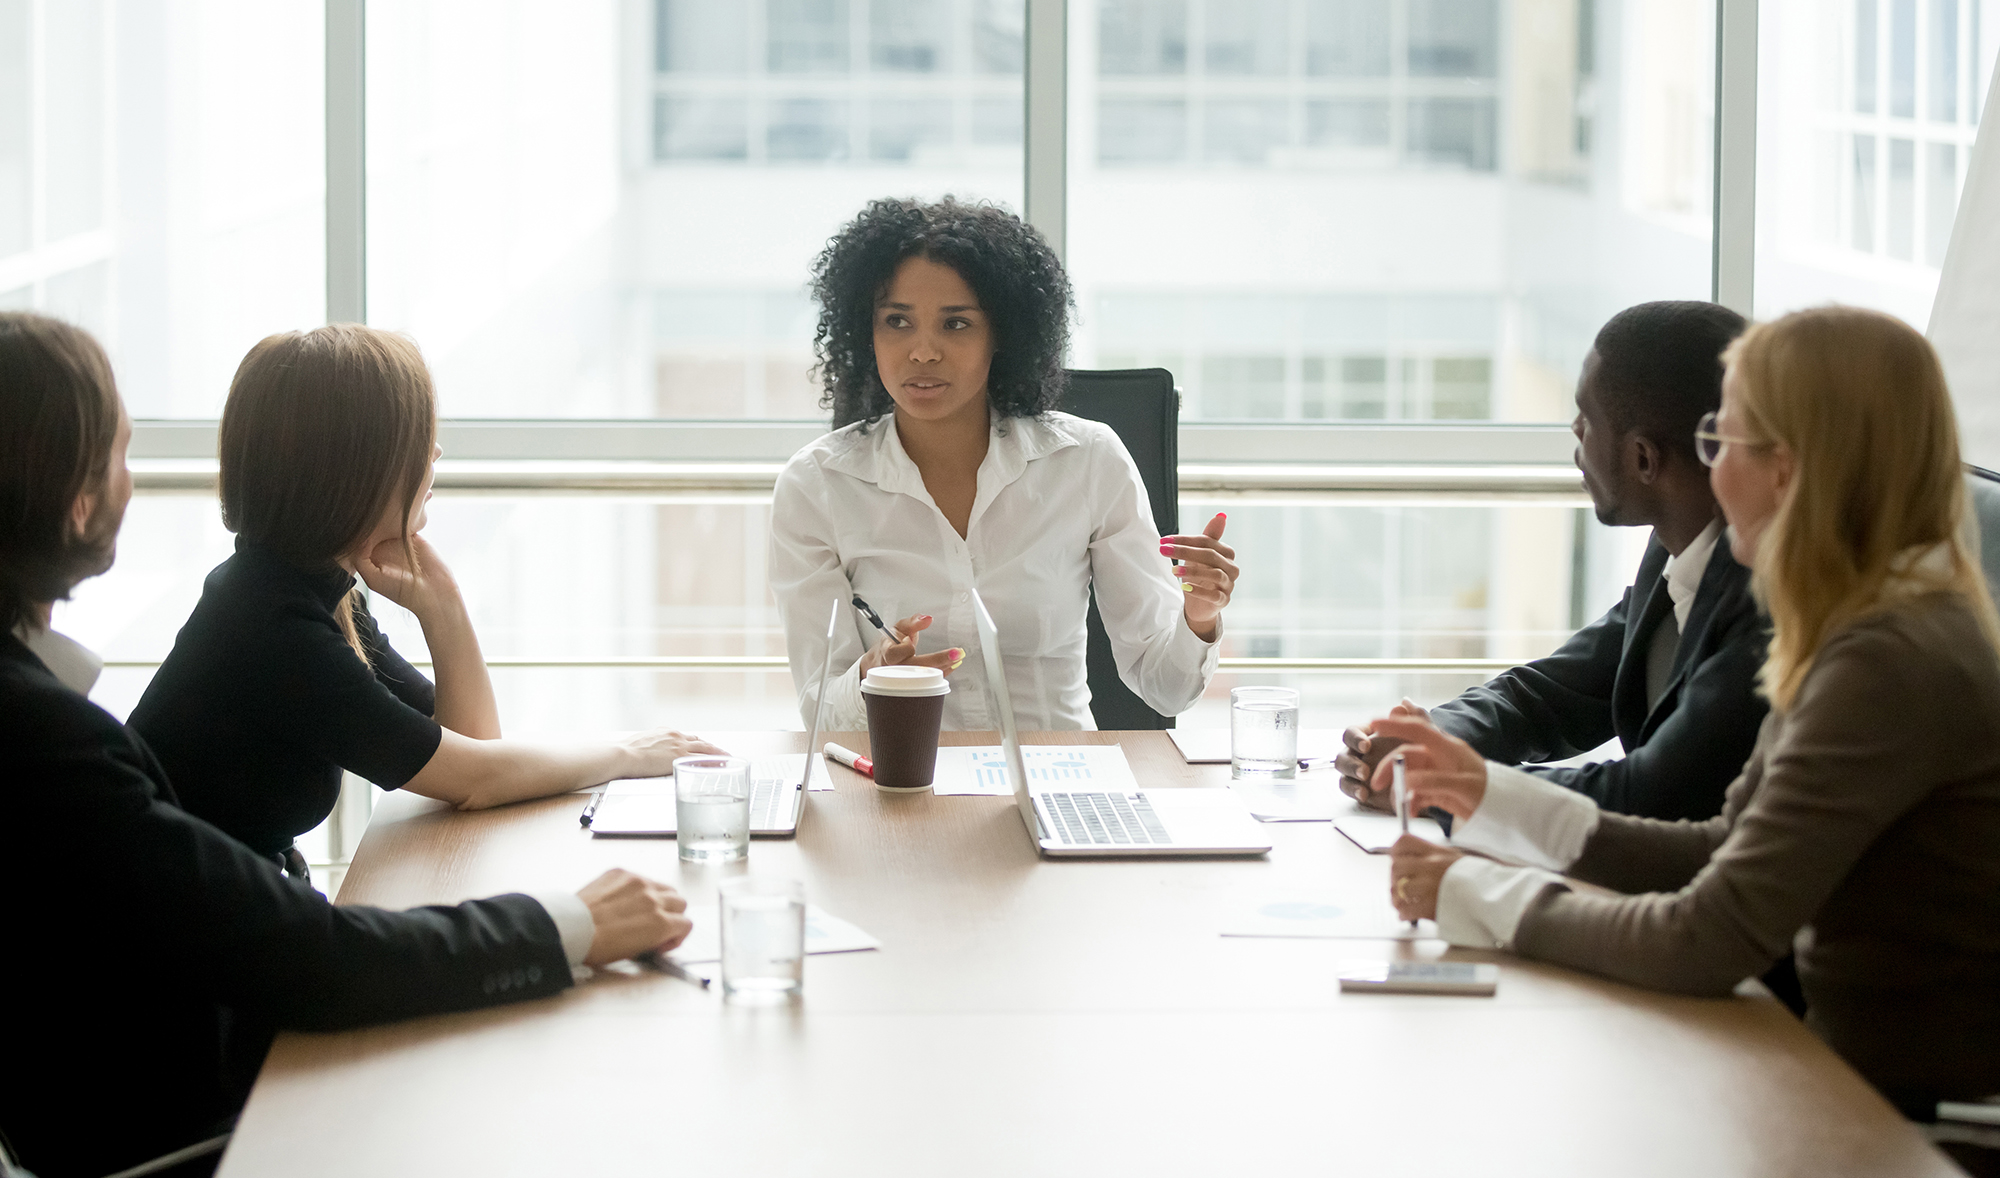 A Lack of Representation for Women in Leadership